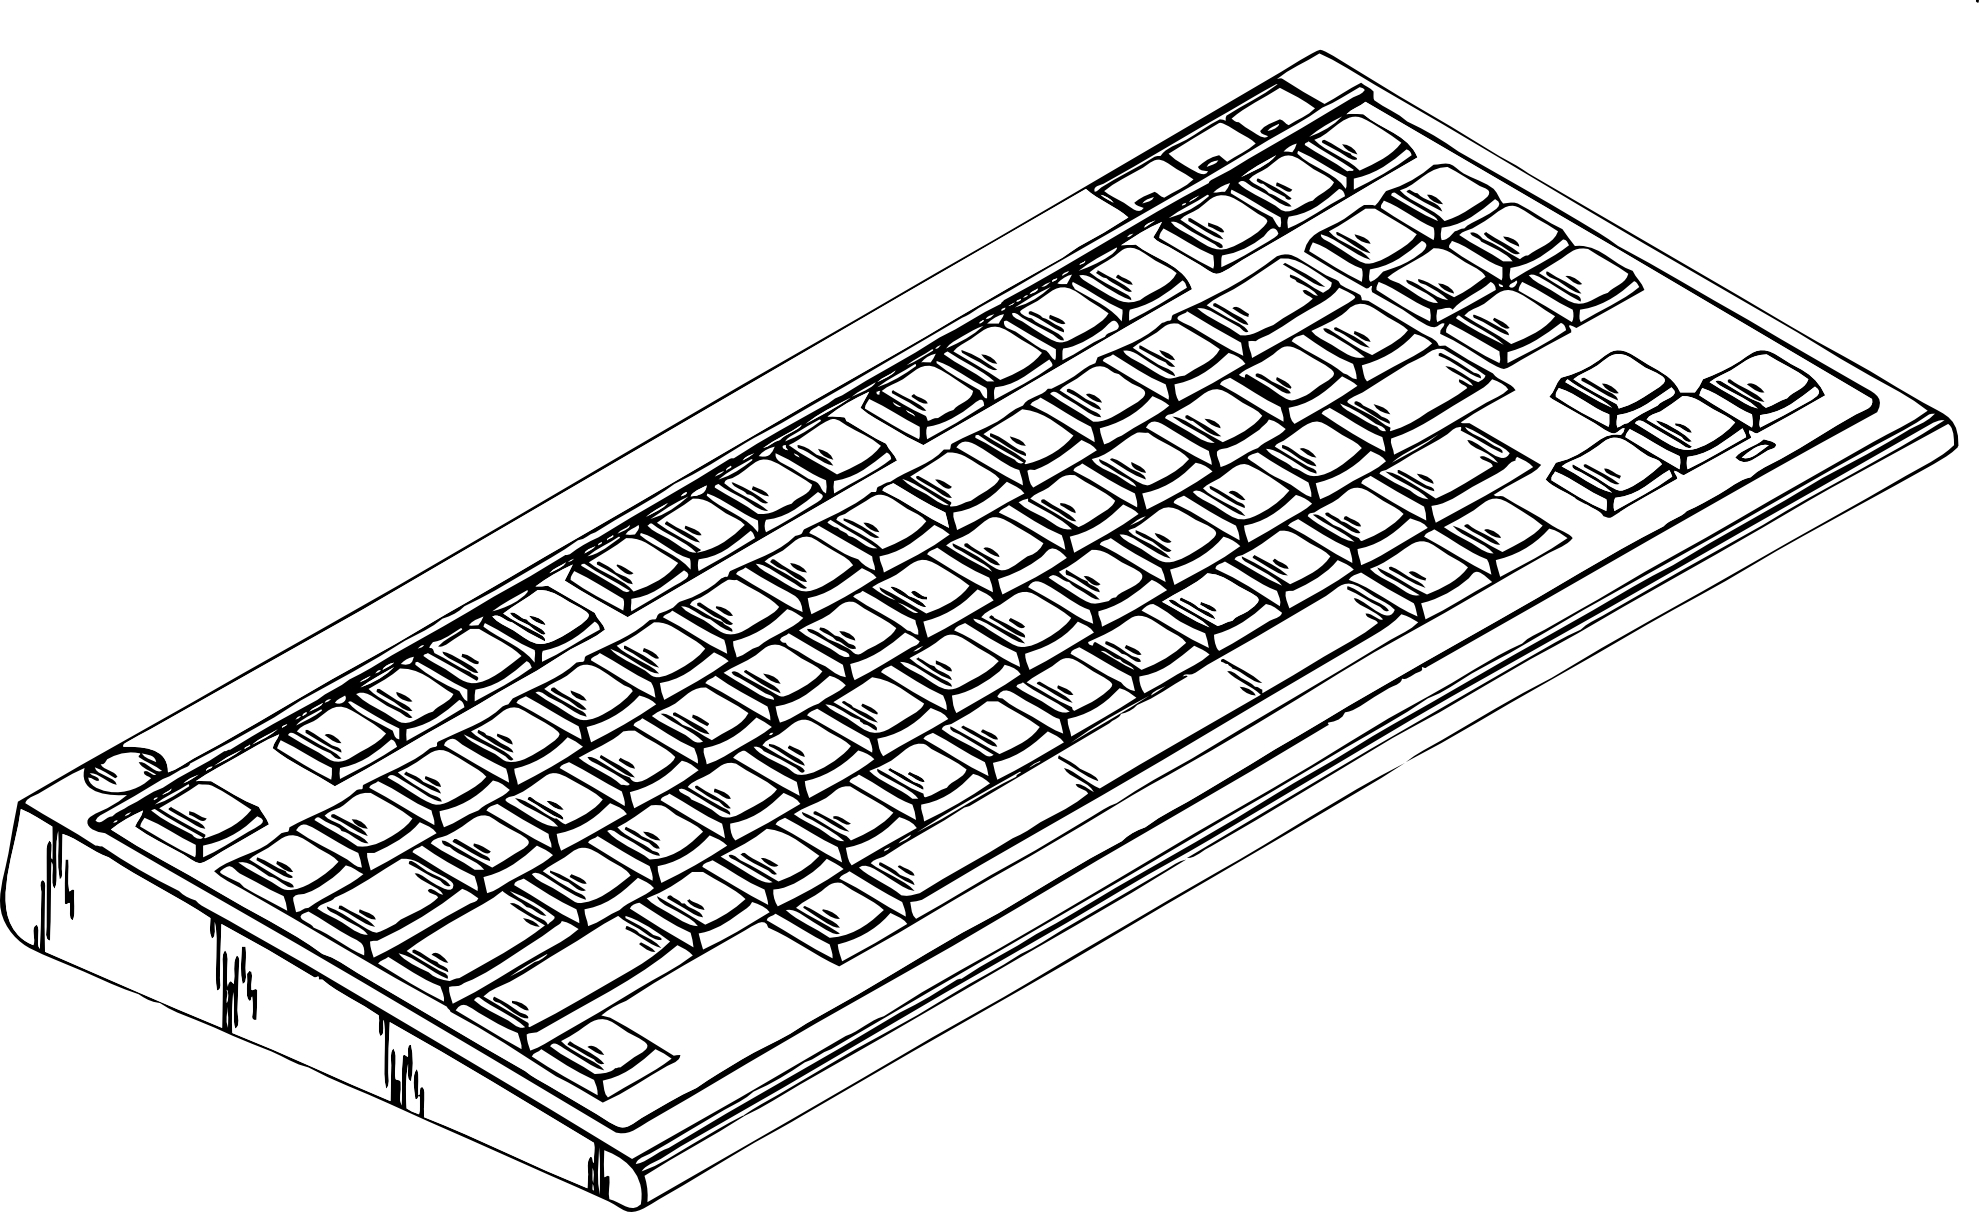 Free Computer Keyboard Images, Download Free Clip Art, Free.